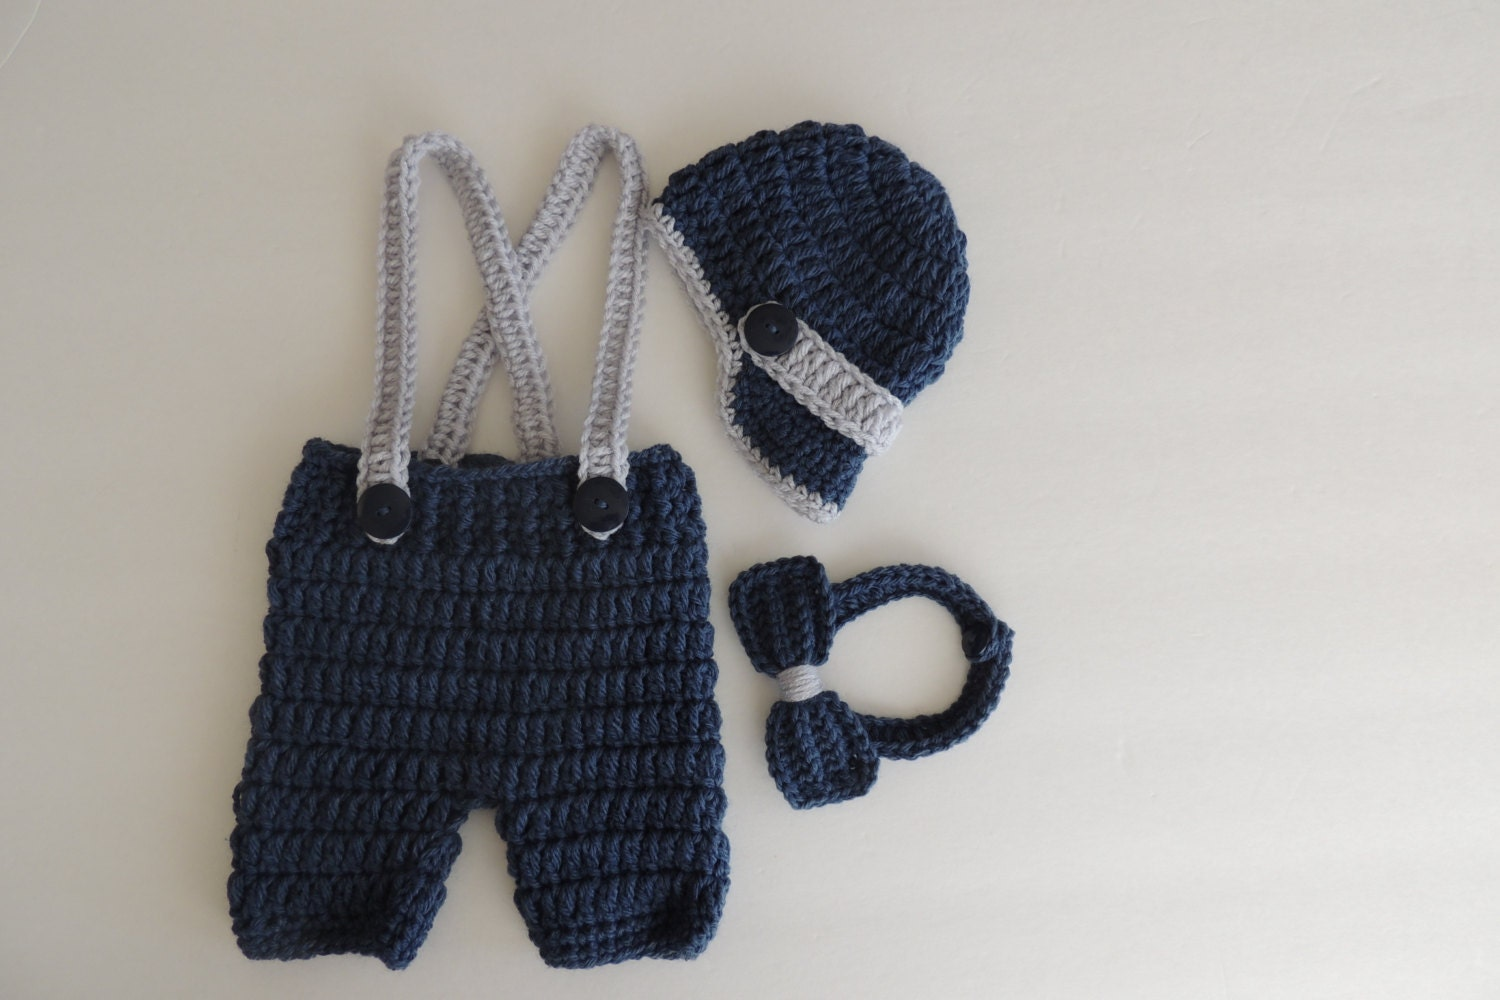 Crochet Newsboy Hat Bowtie Shorts/Pants with Suspenders in ...